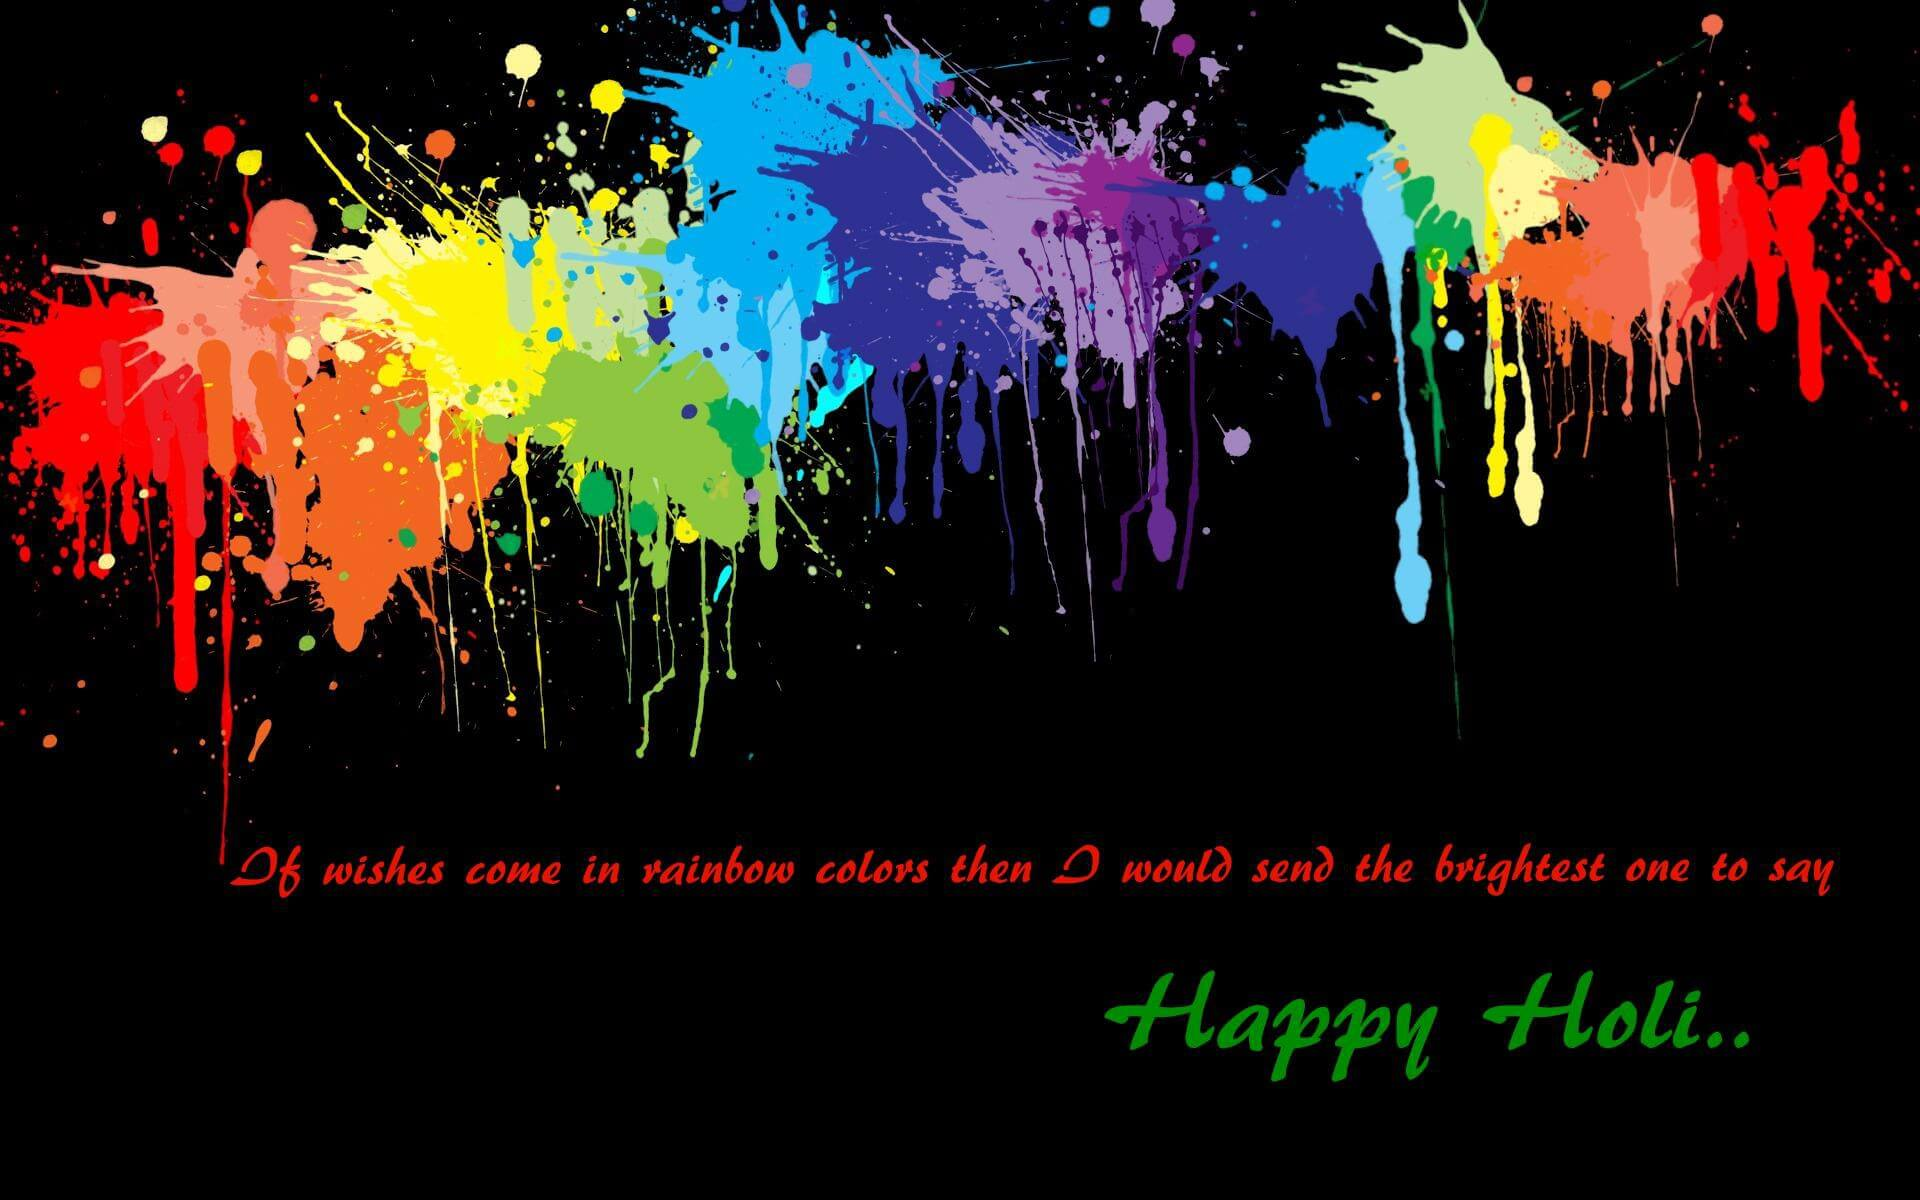 happy holi festival greetings wishes hd 3d rainbow wallpaper